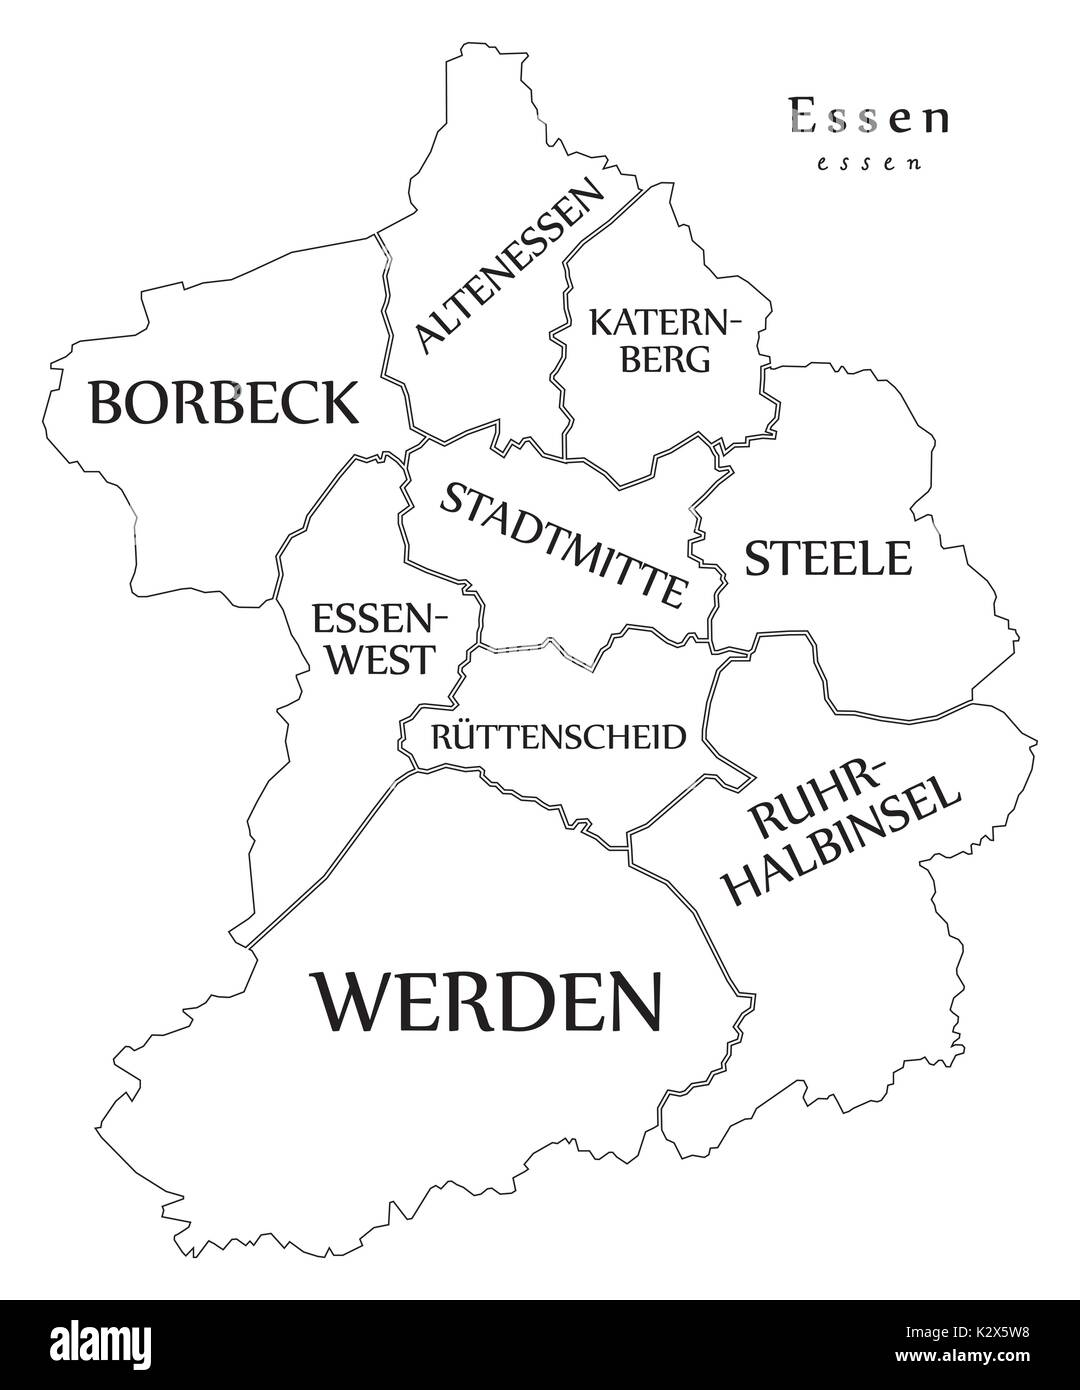 Modern City Map Essen City Of Germany With Boroughs And Titles - Germany map essen